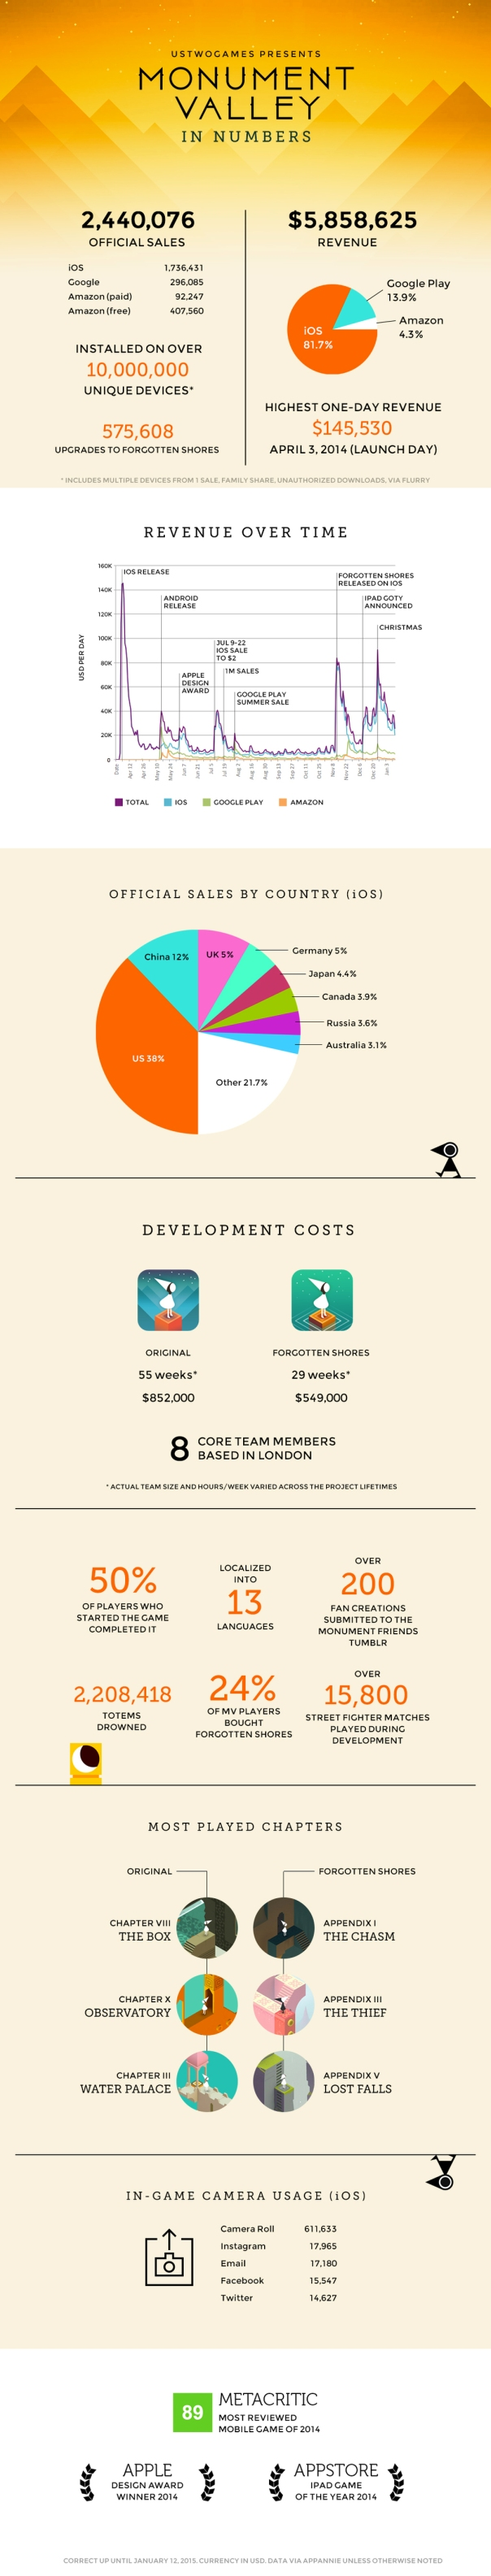 monument-valley-in-numbers-infographic